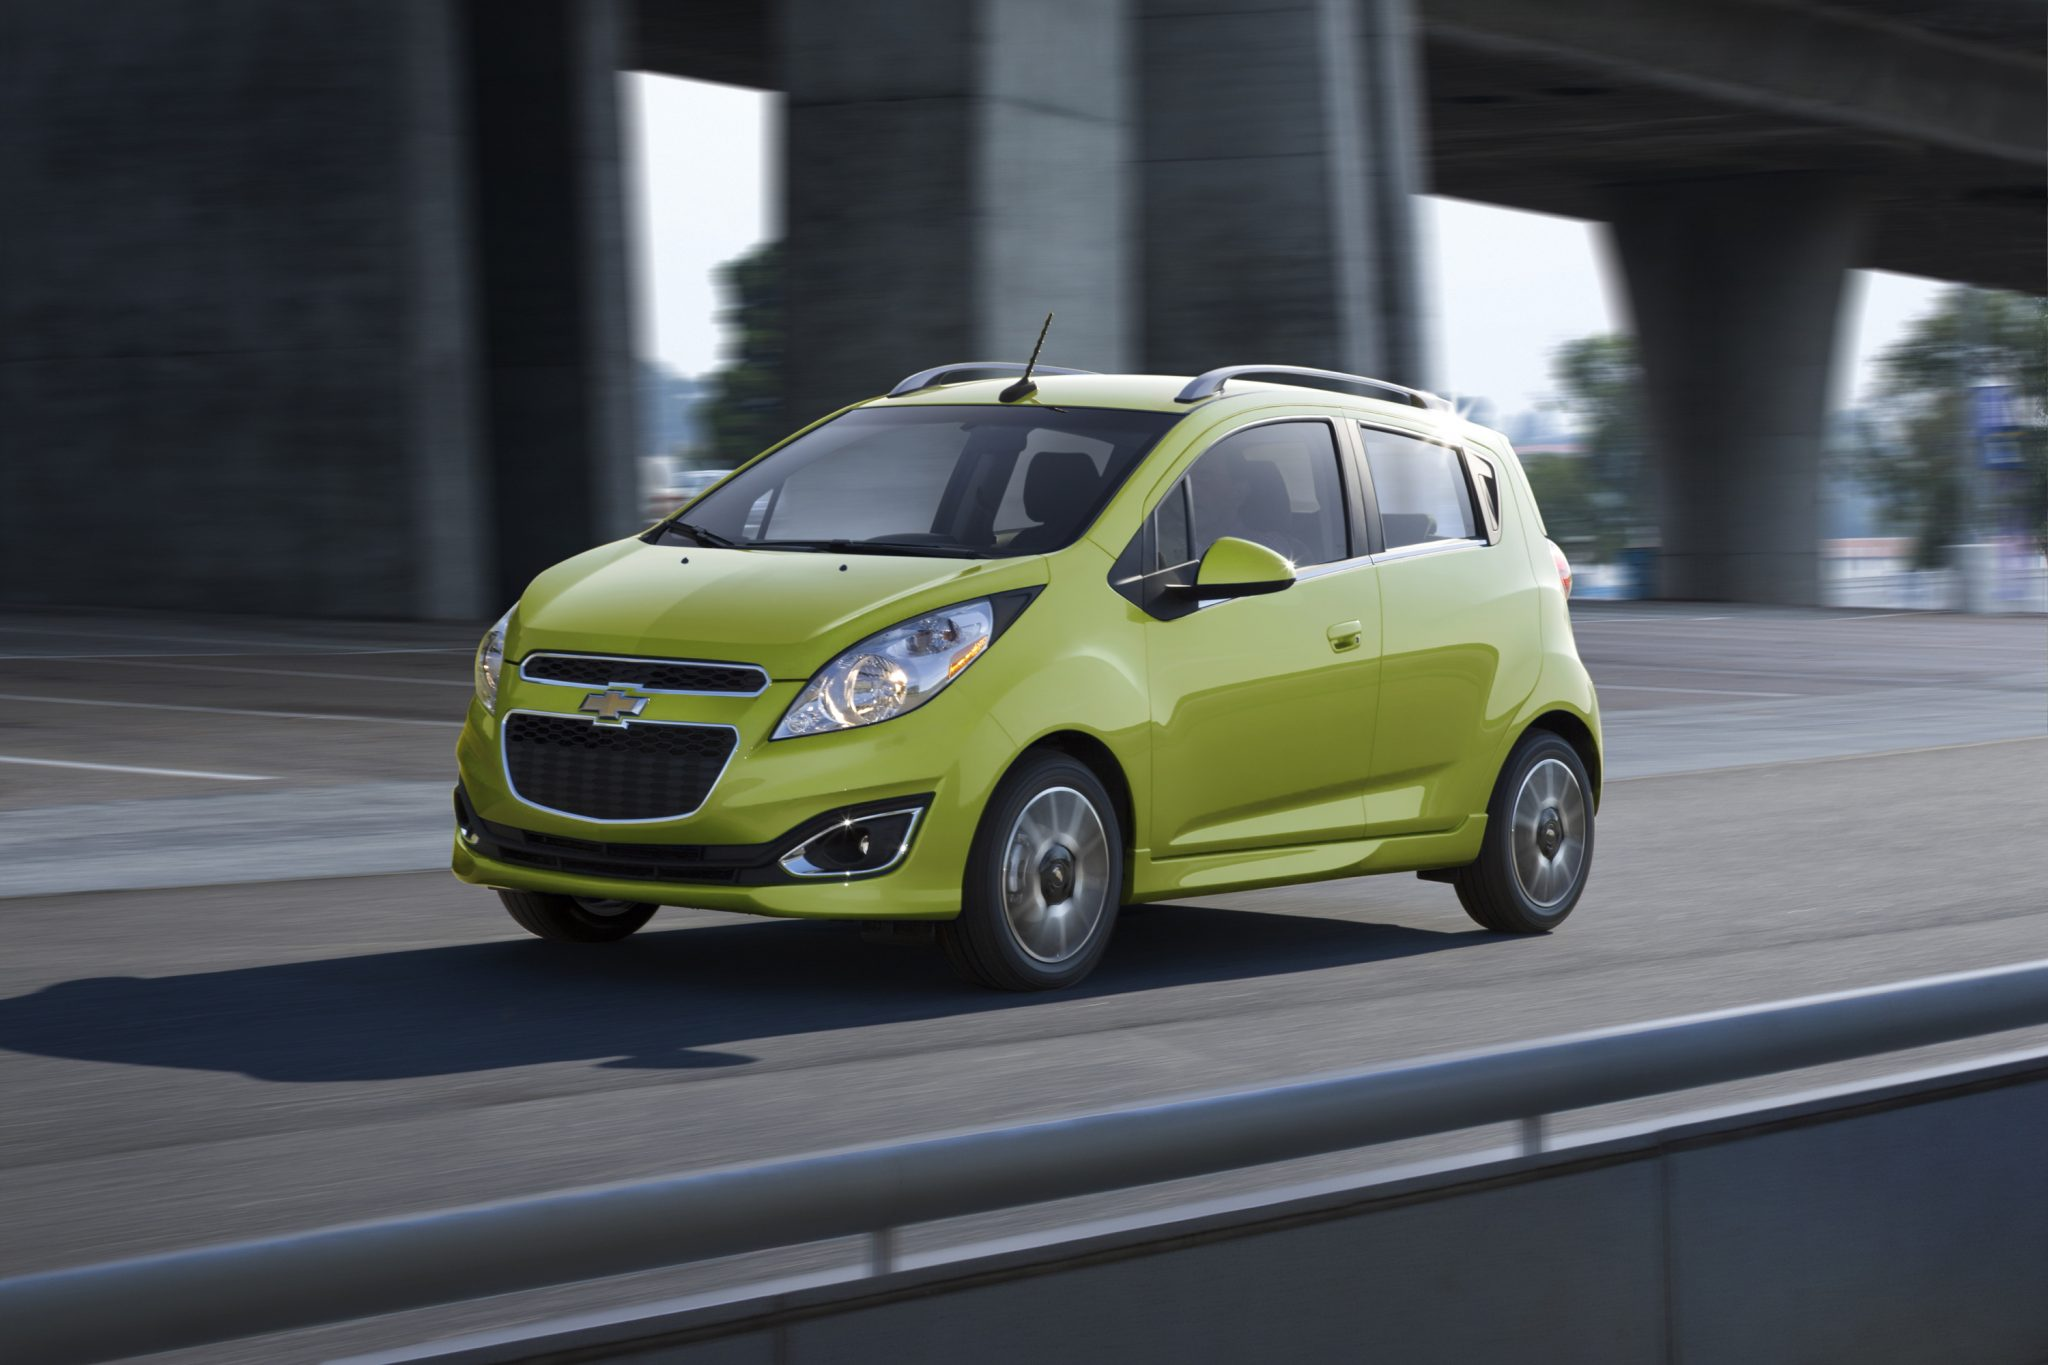 2015 Chevrolet Spark Model Overview The News Wheel